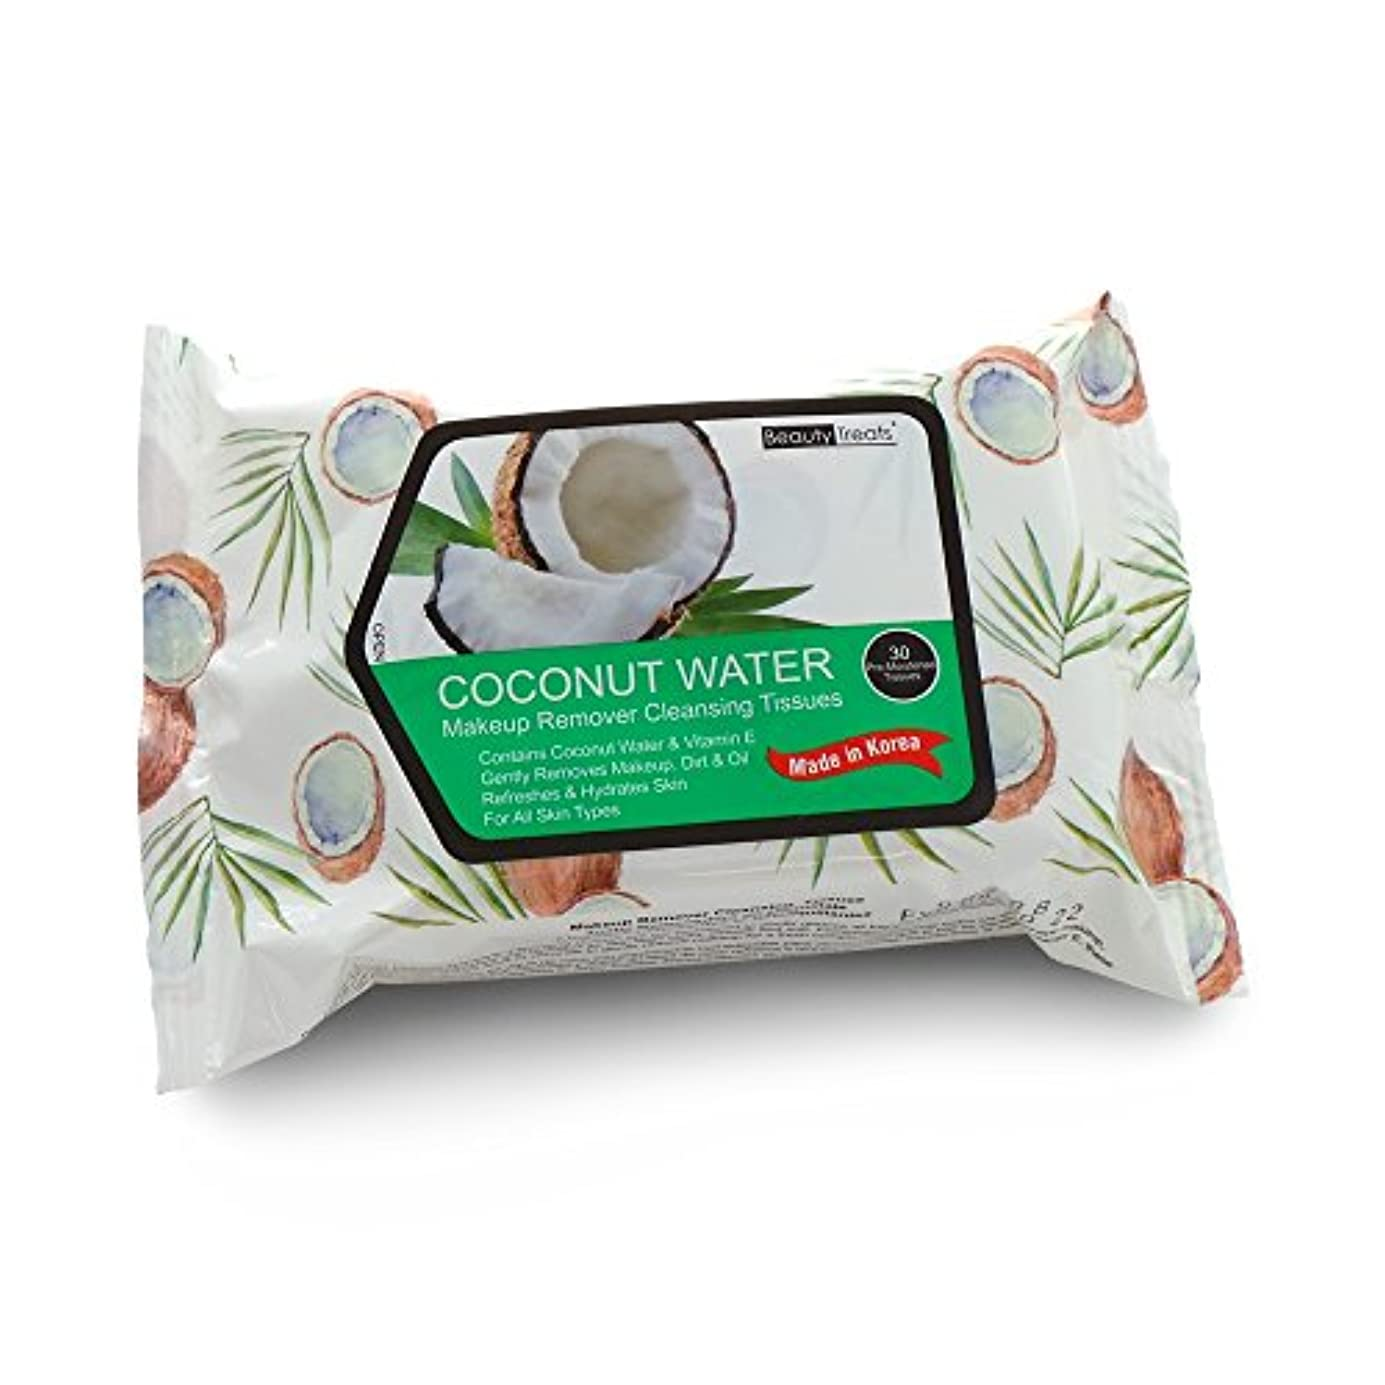 再生日食改革(6 Pack) BEAUTY TREATS Coconut Water Makeup Remover Cleaning Tissues (並行輸入品)